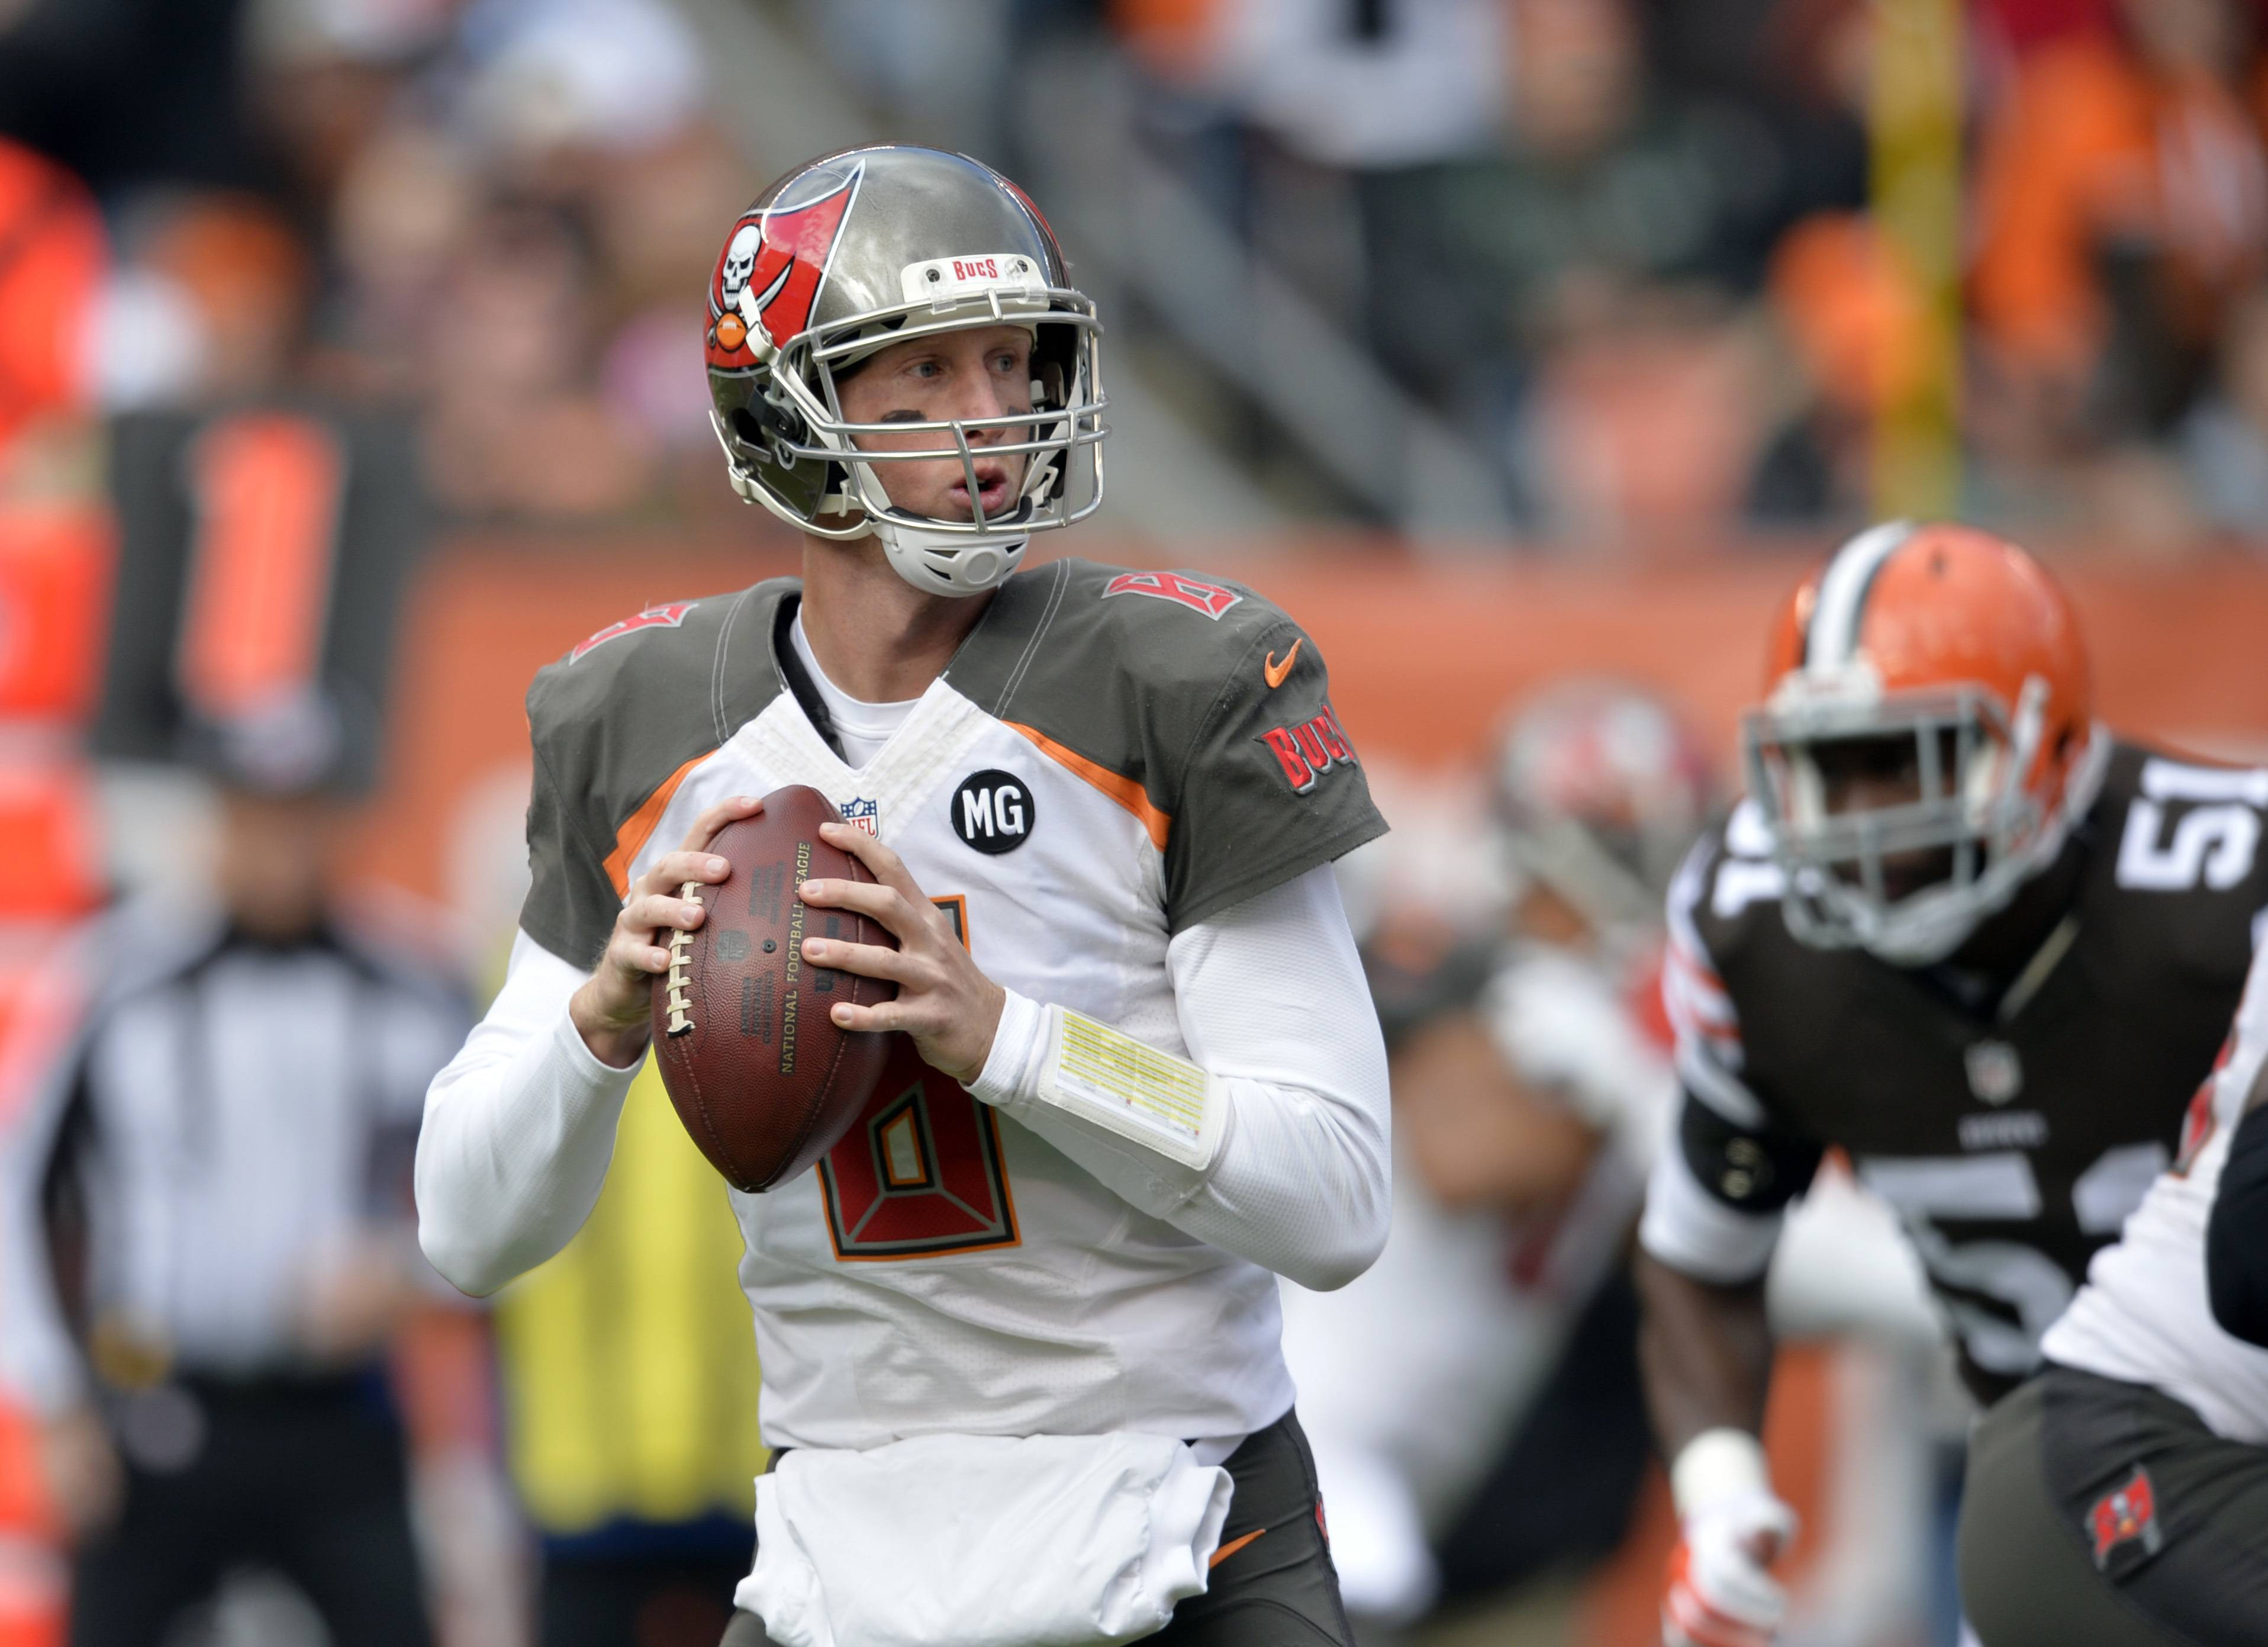 New QB Glennon: Bears have a lot of great building blocks